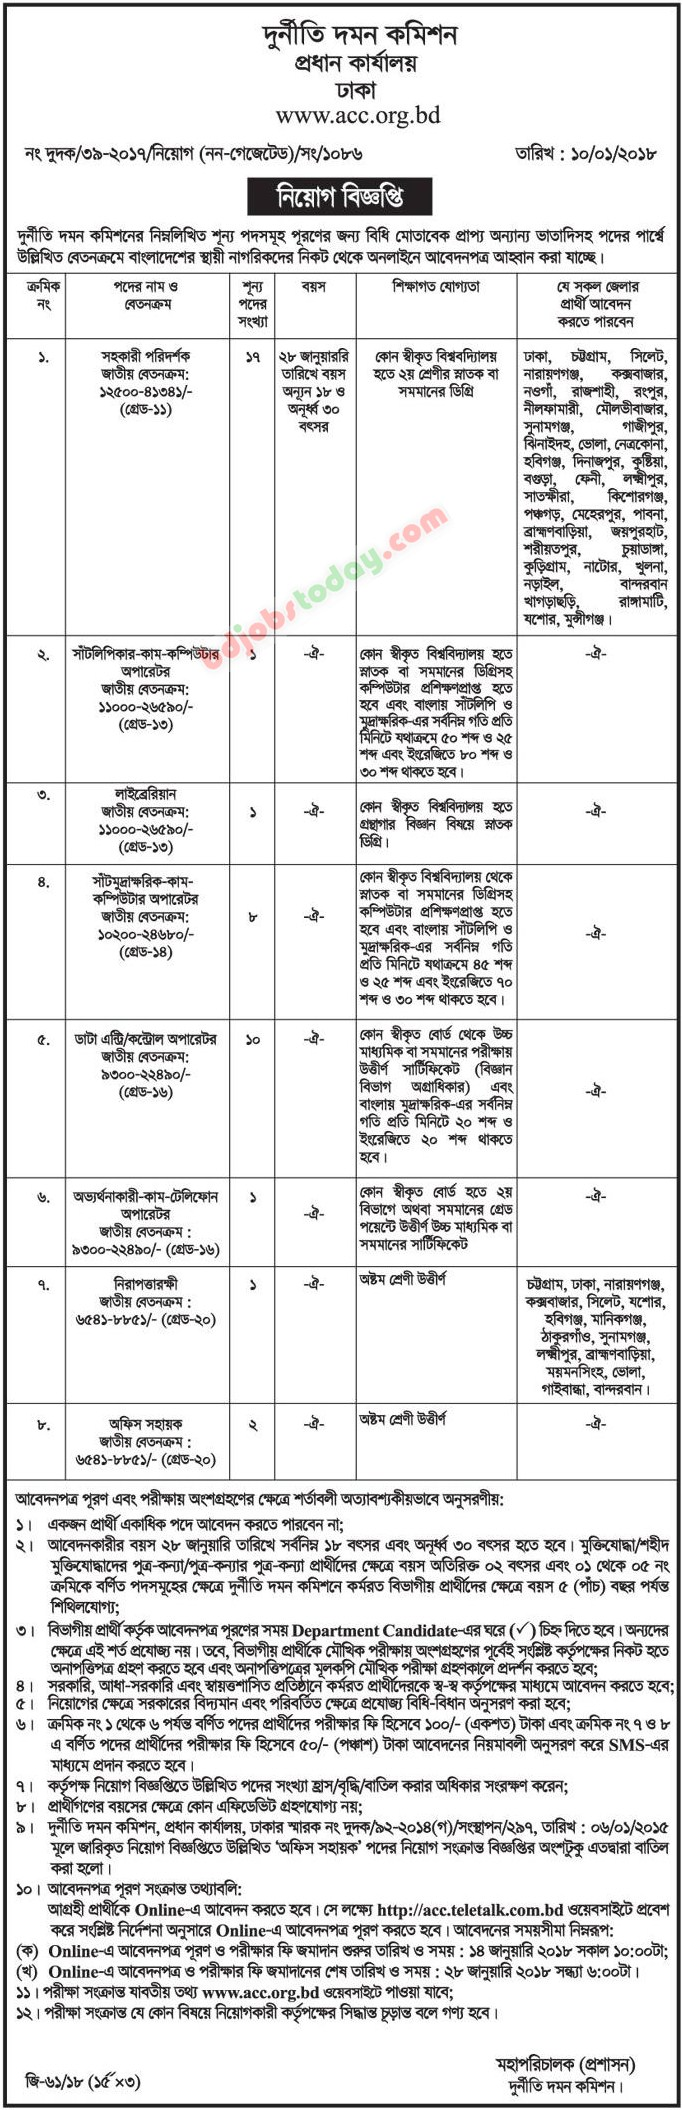 Anti-Corruption Commission (ACC) jobs